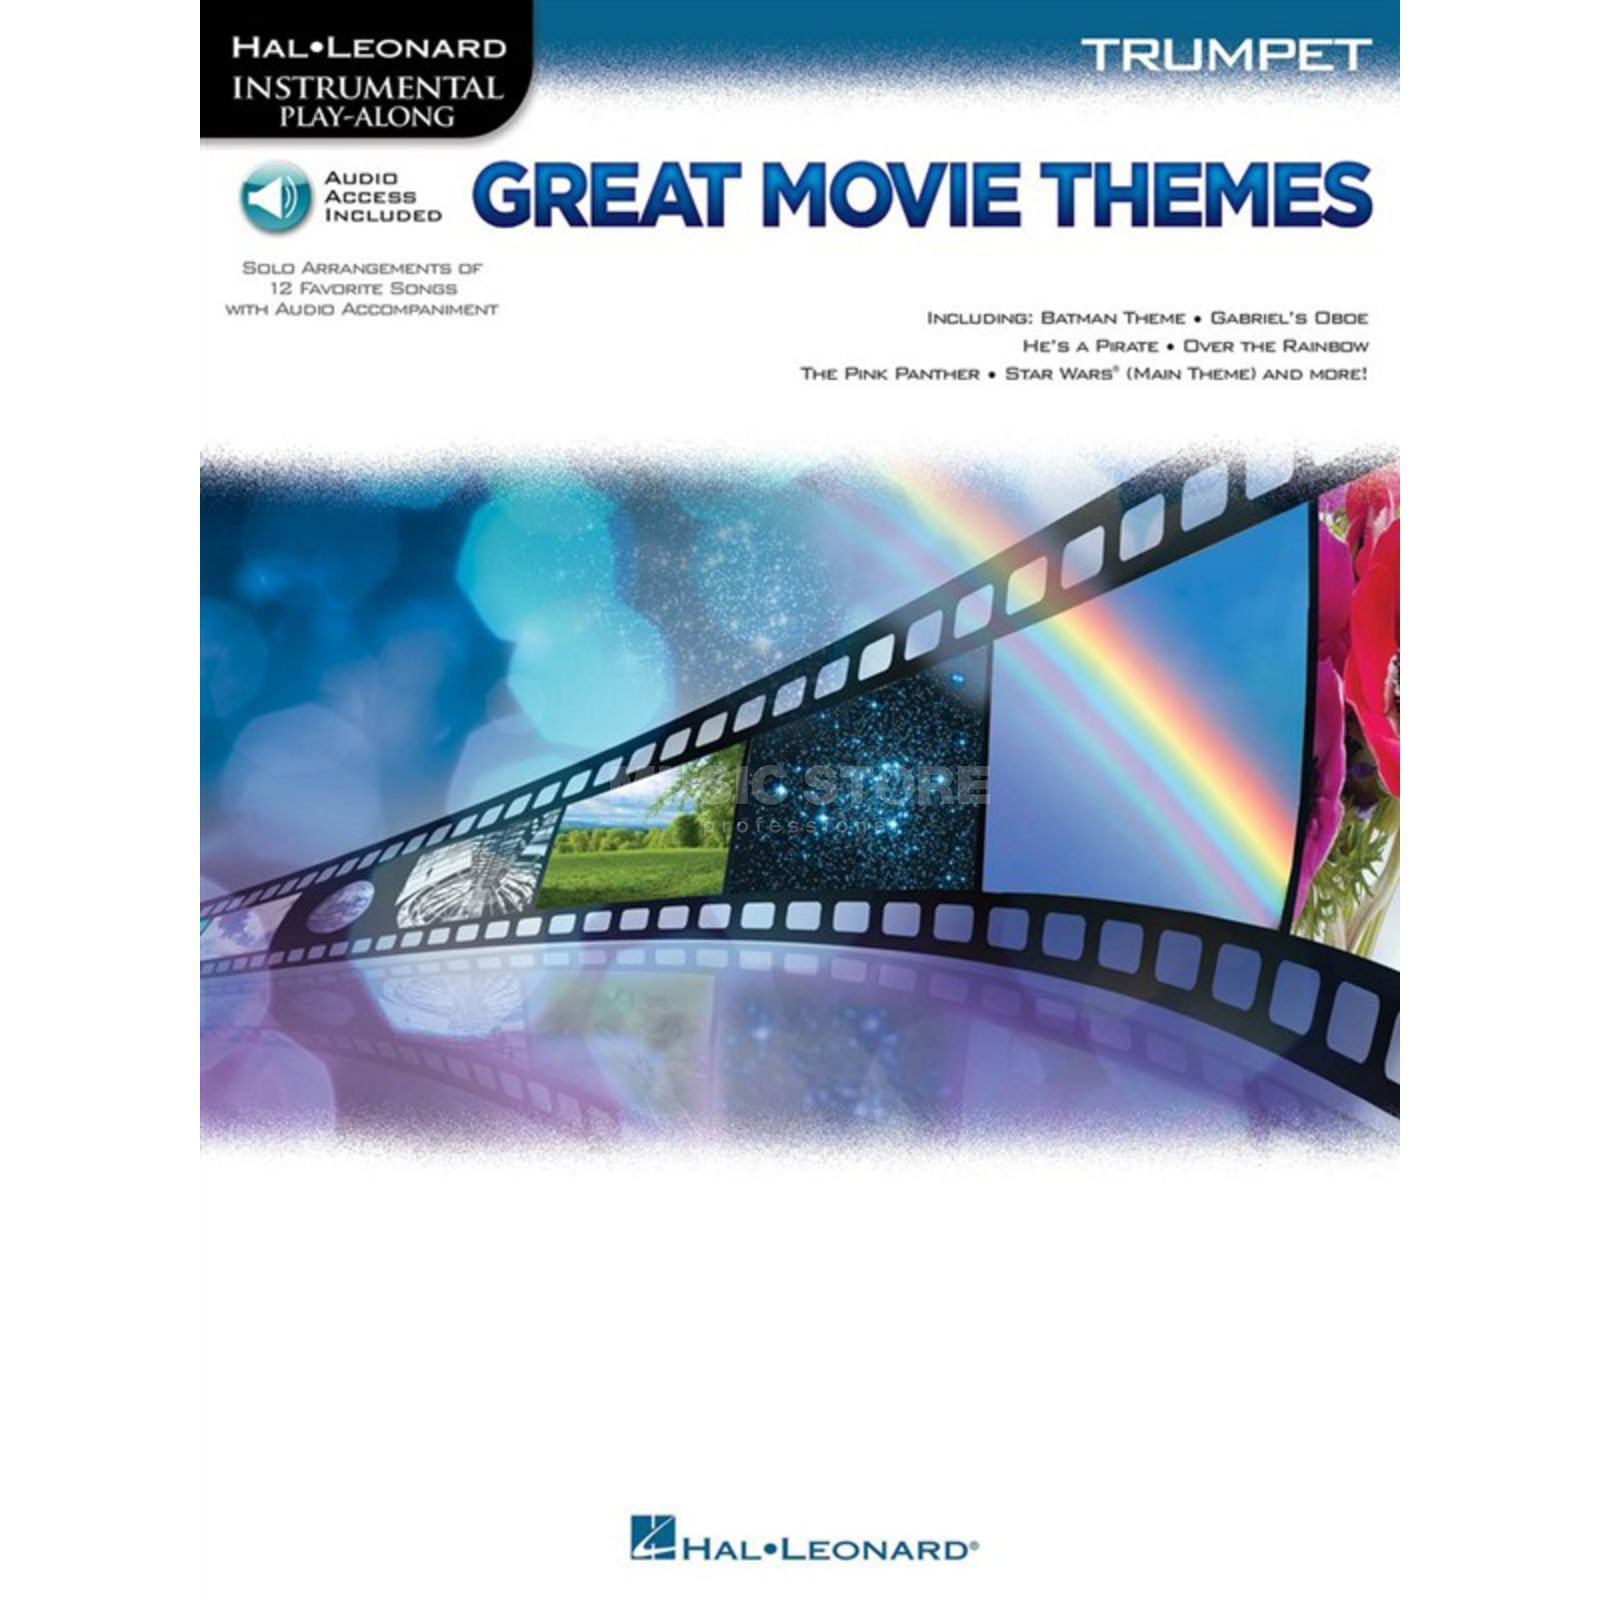 Hal Leonard Instrumental Play-Along: Great Movie Themes - Trumpet Produktbild